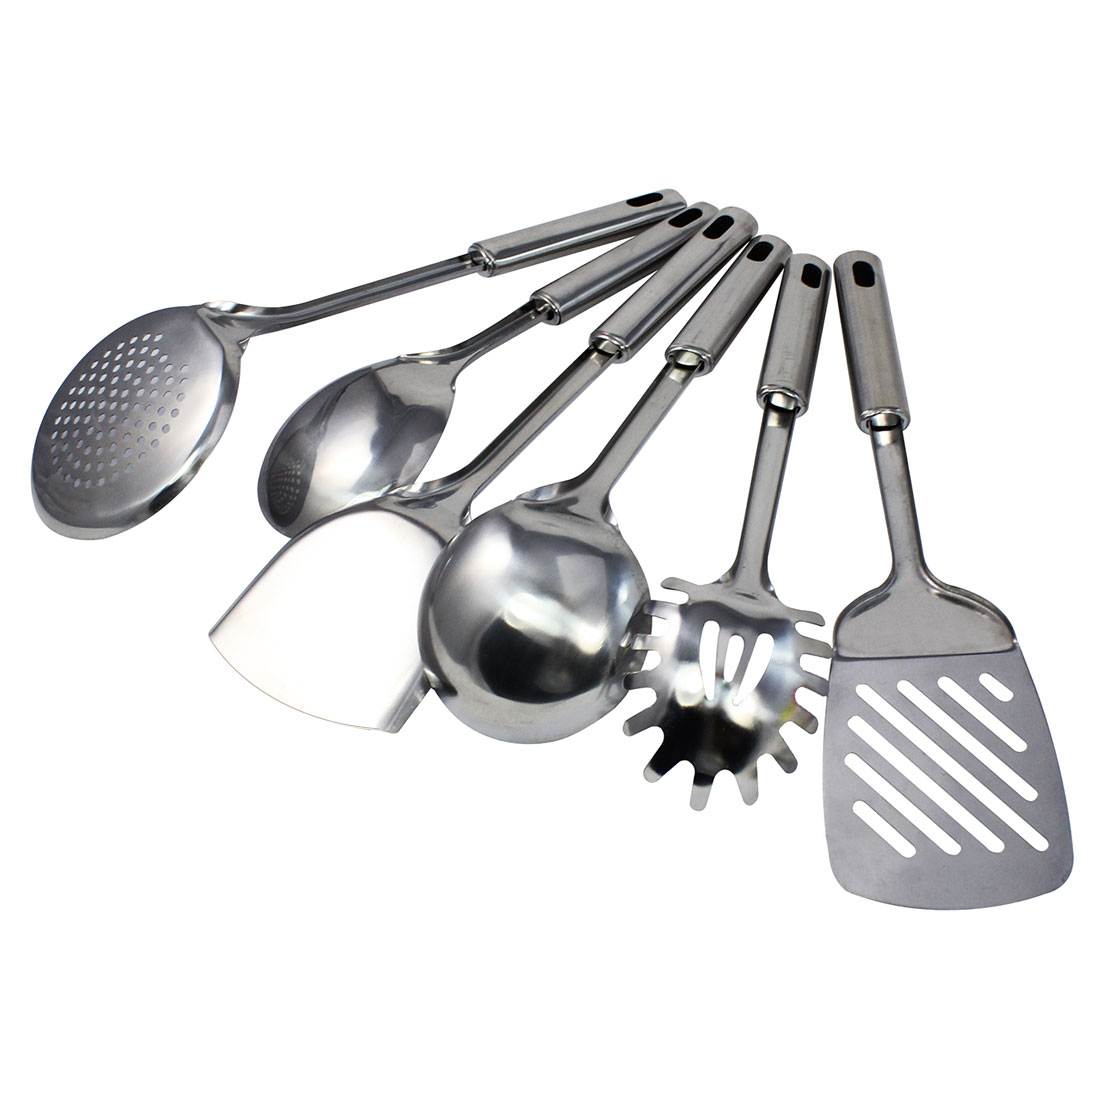 Home Restaurant Kitchen Utensil Stainless Steel Kitchenware Set 6 in 1